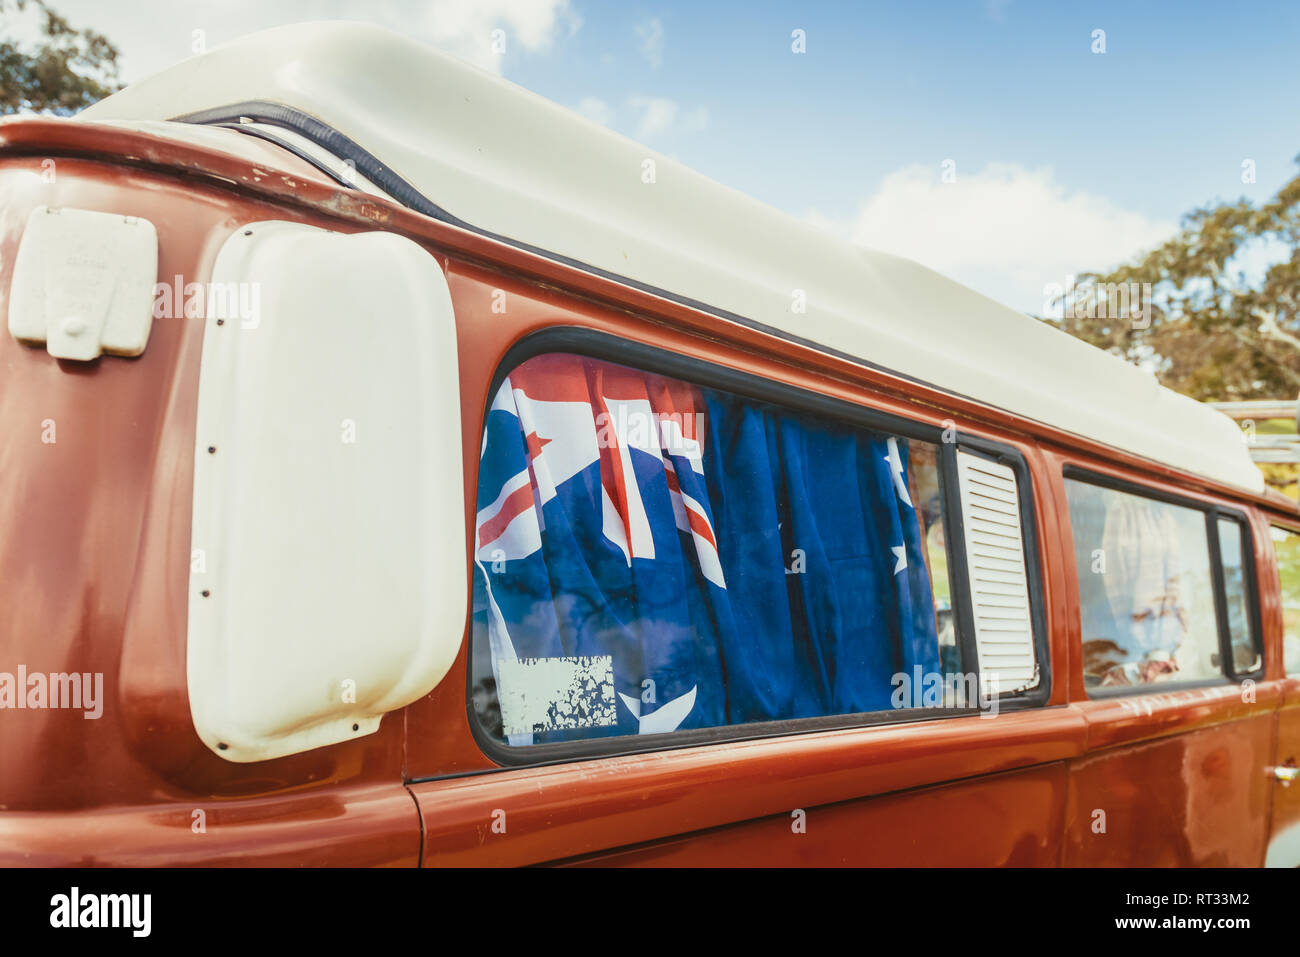 Old australian camper van with flag of Australia behind its rear window parked in caravan park on a day - Stock Image